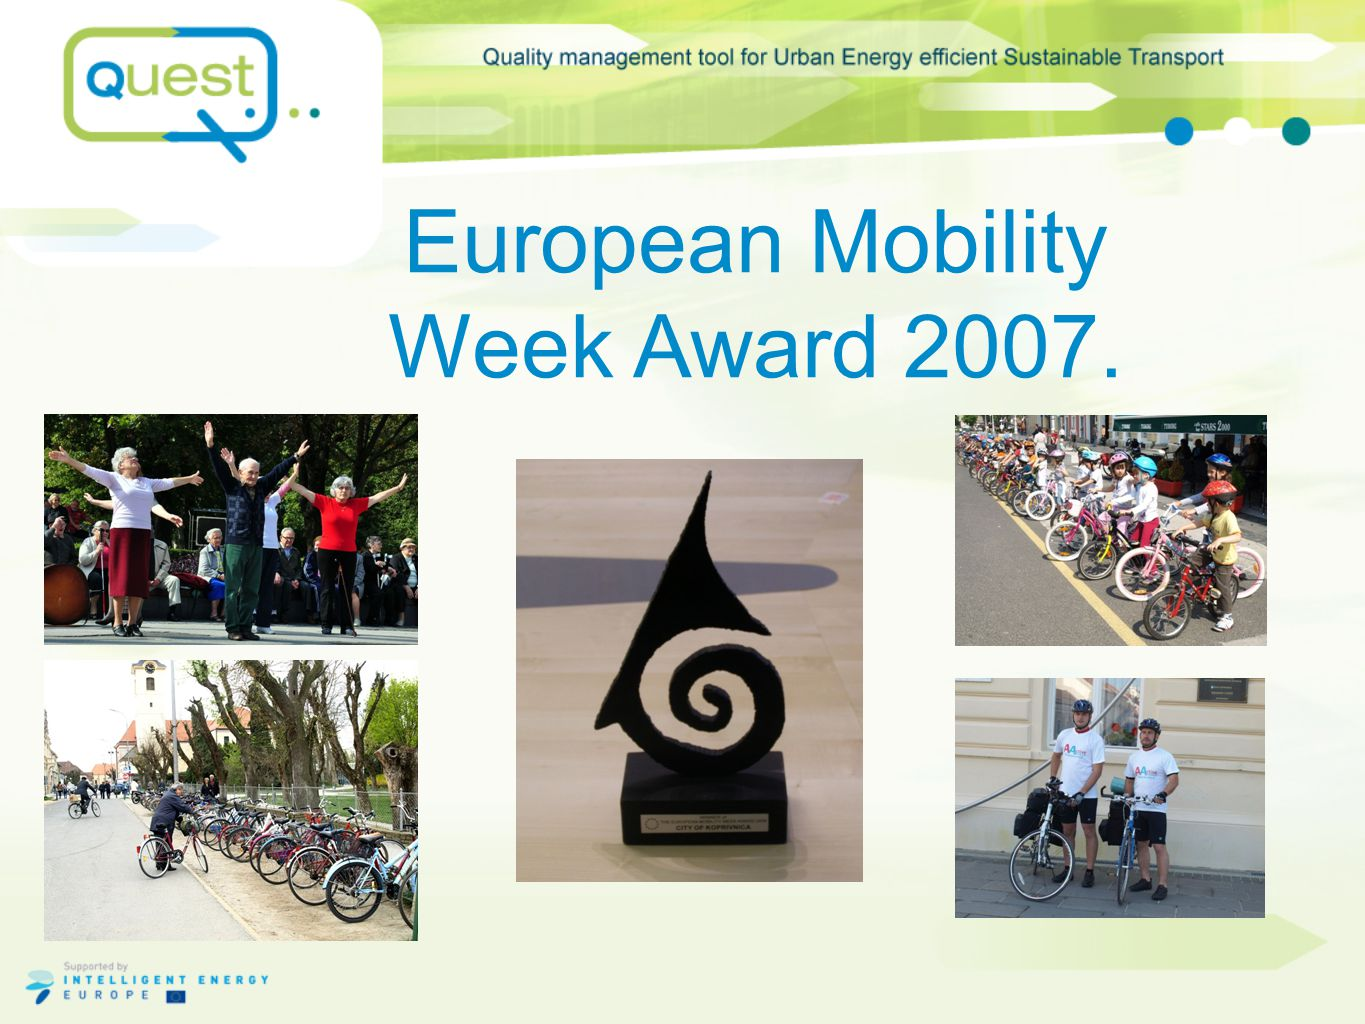 European Mobility Week Award 2007.